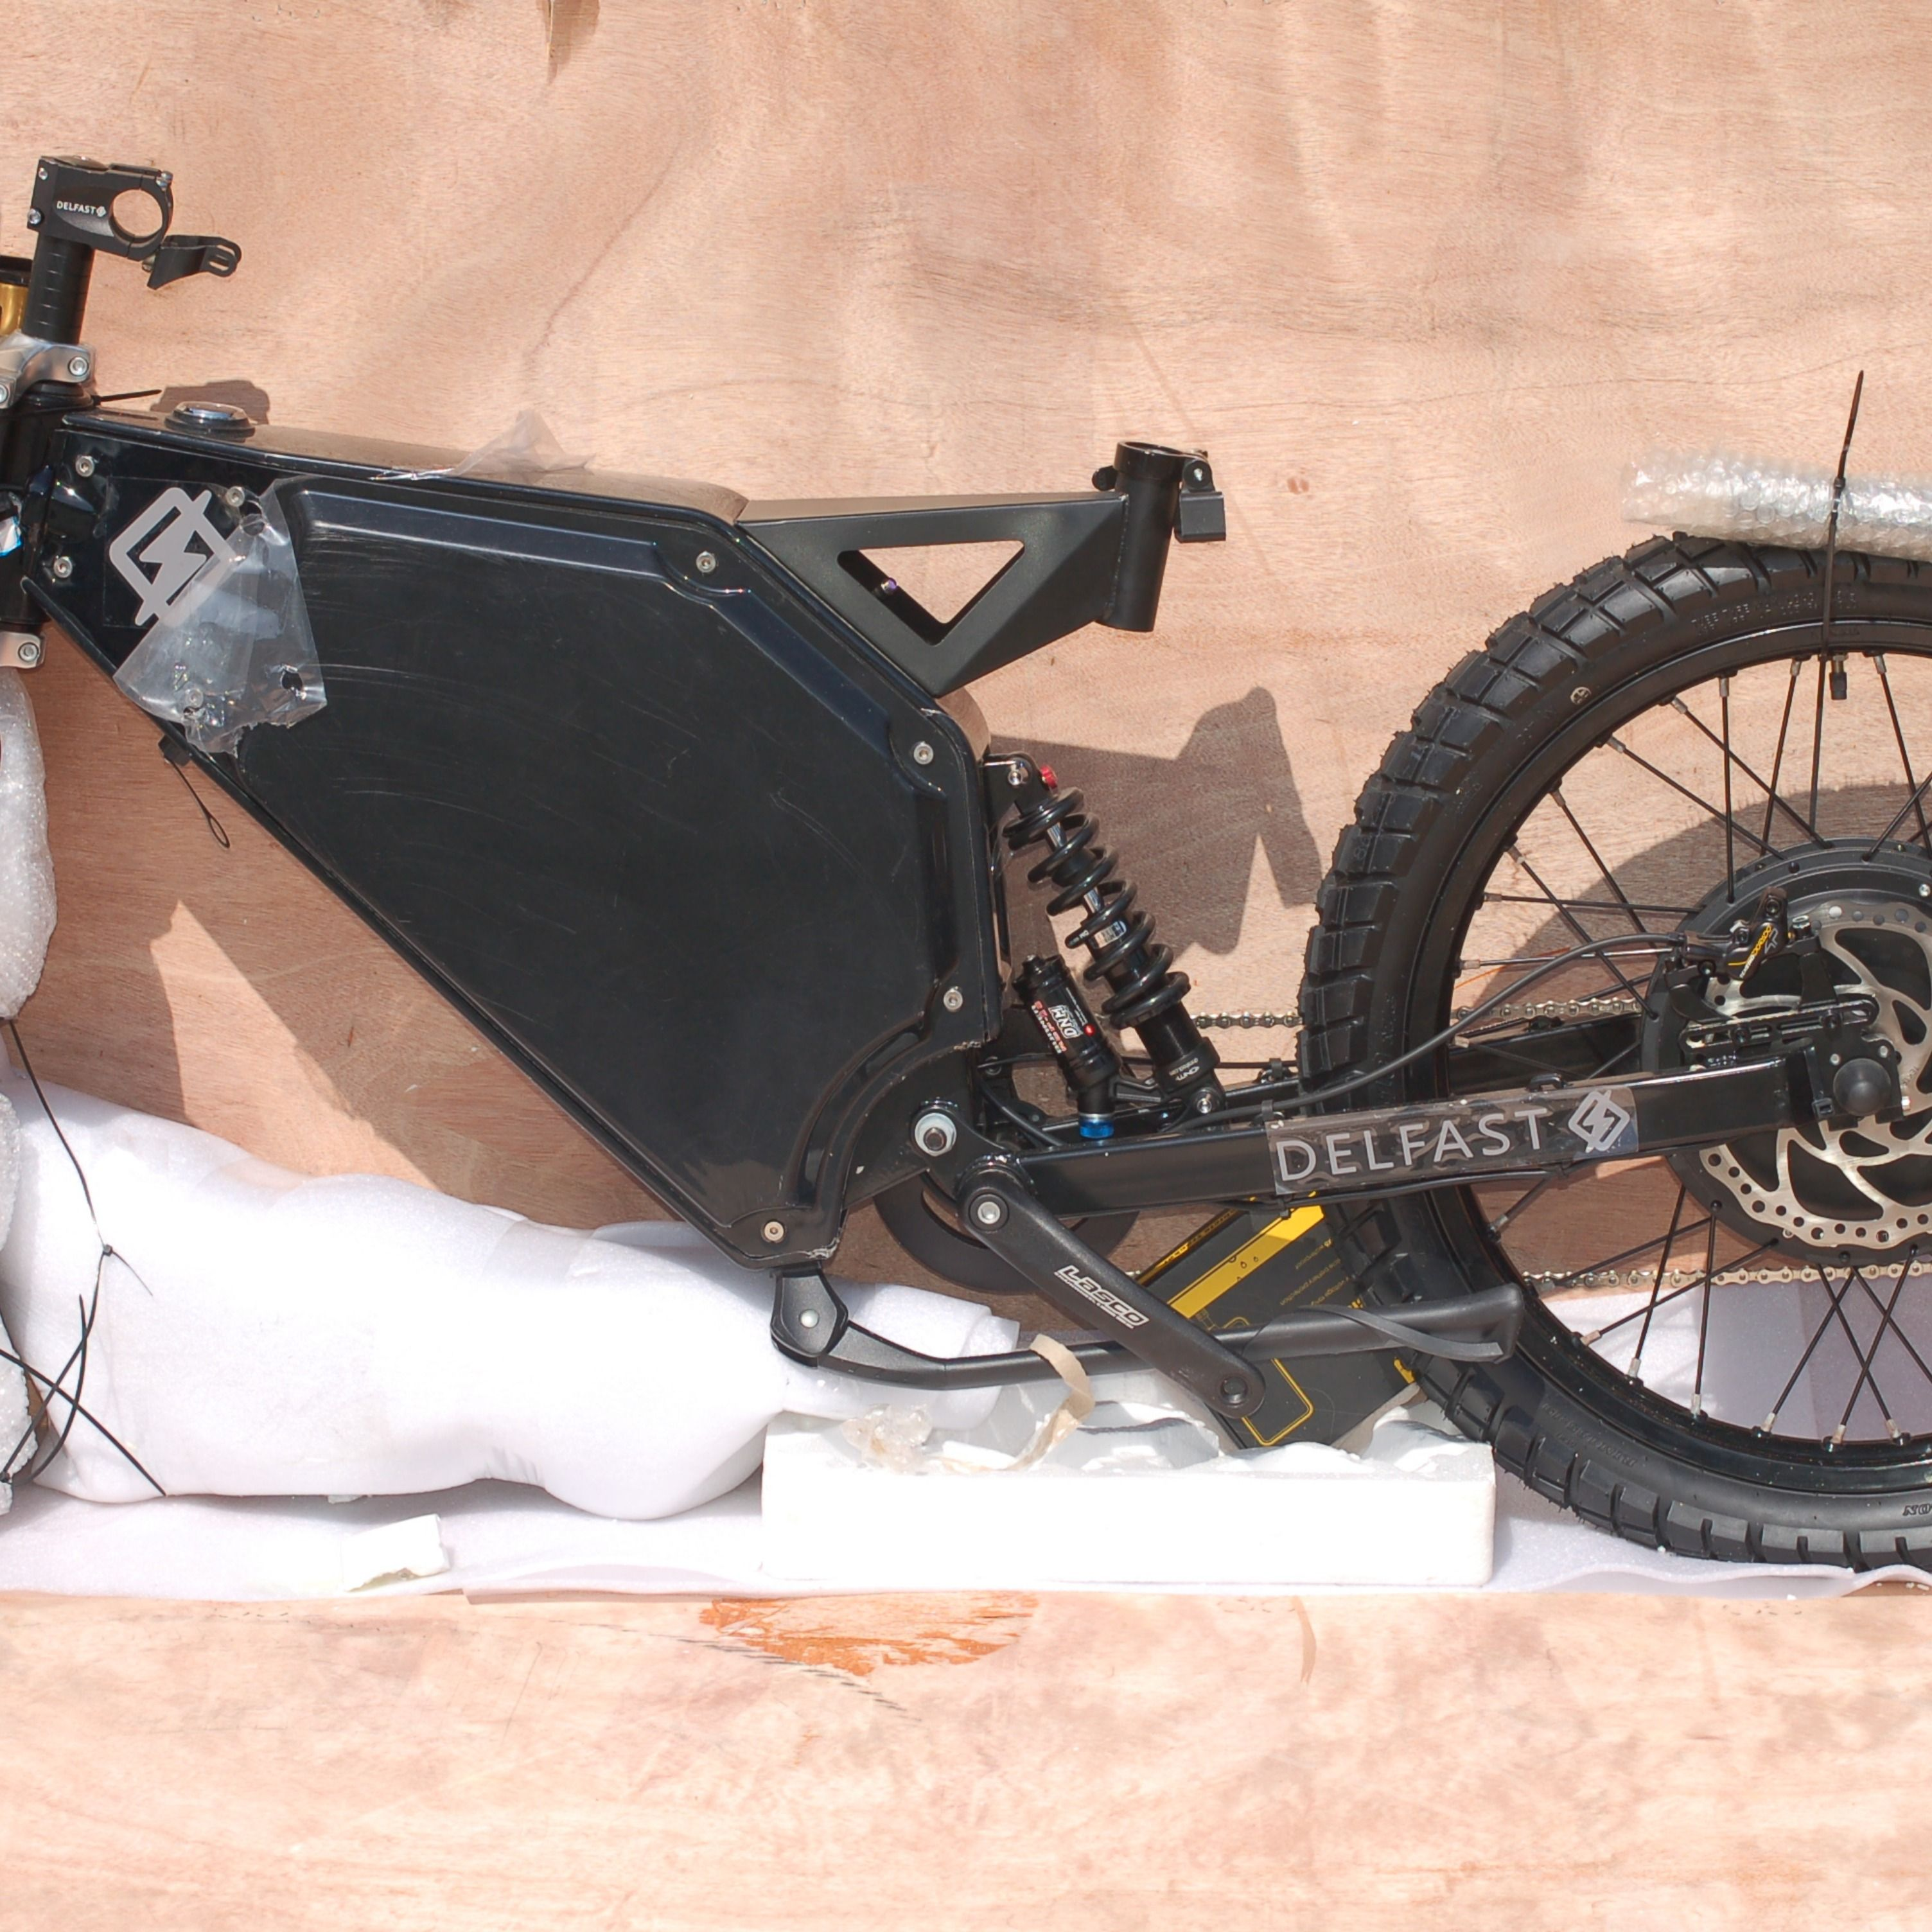 Electric Bike With The Record 236 Miles On A Single Charge